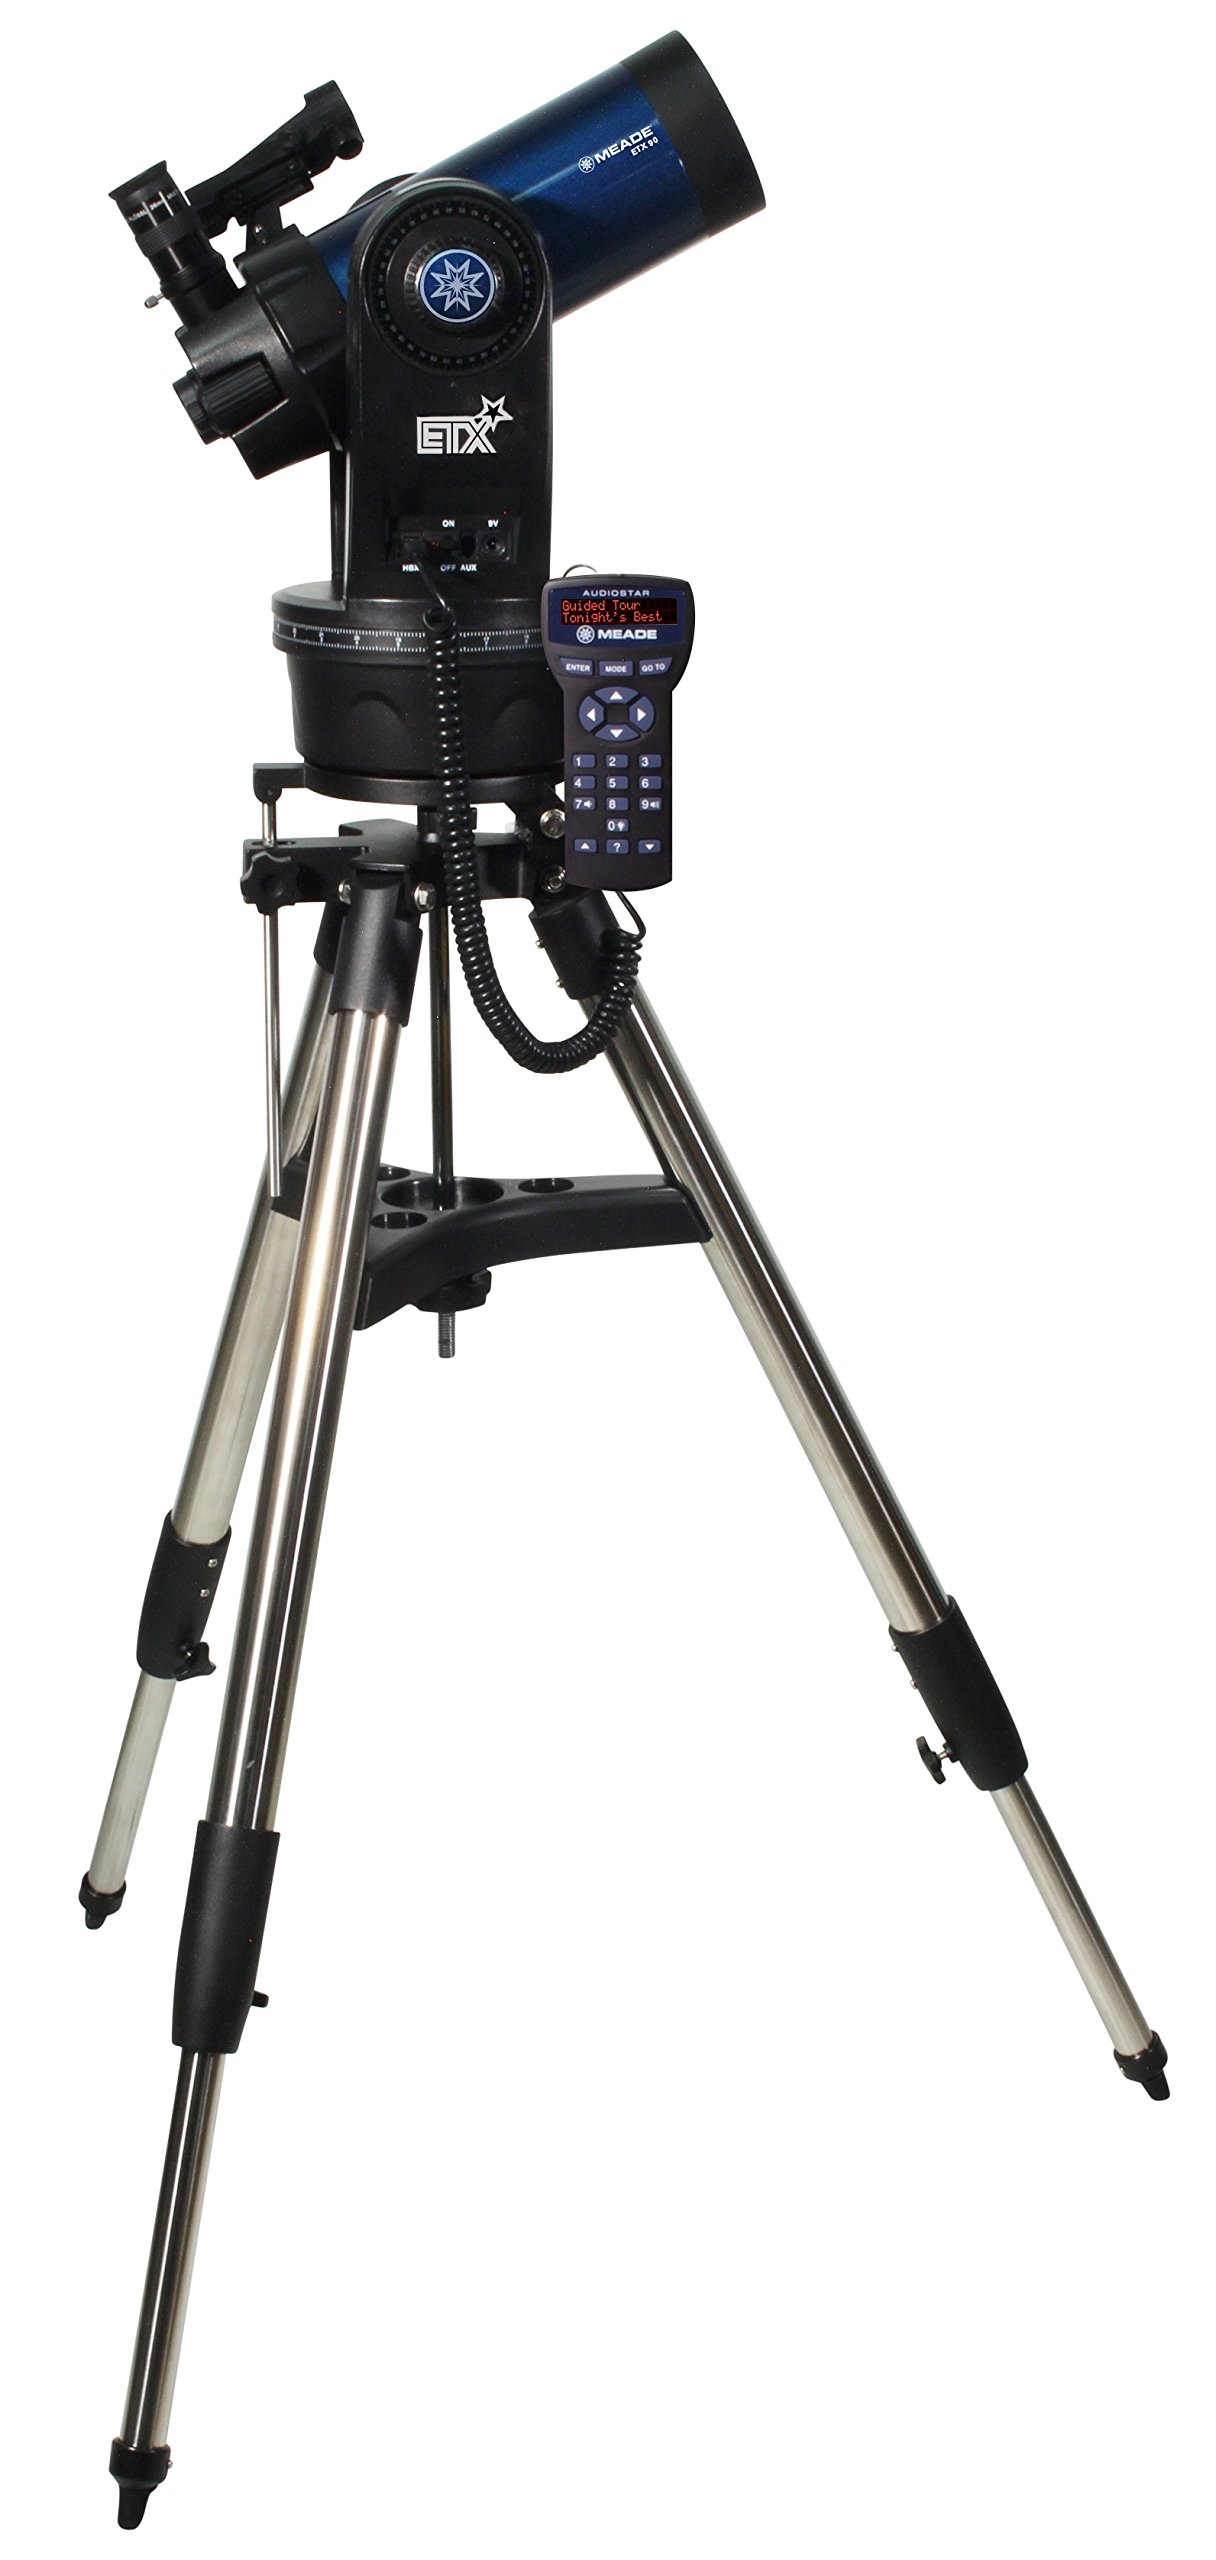 Meade Instruments 205004 ETX90 Observer Maksutov-Cassegrain Telescope with Tripod, Eyepieces, and Hand Carry Case by Meade Instruments